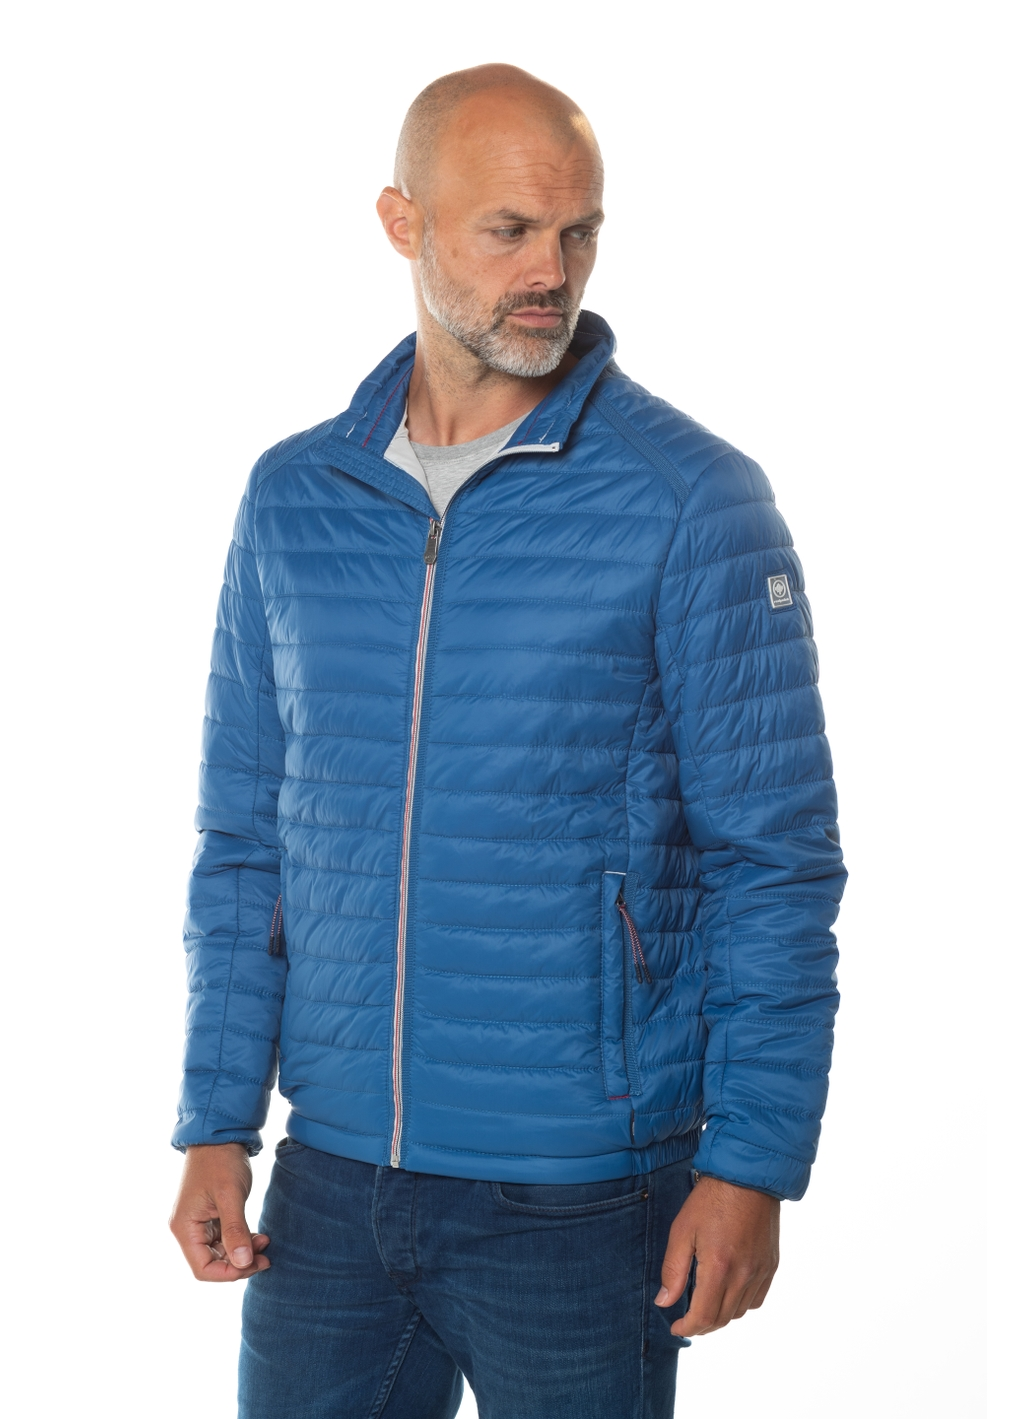 Steph Lightweight Padded Jacket in Blue